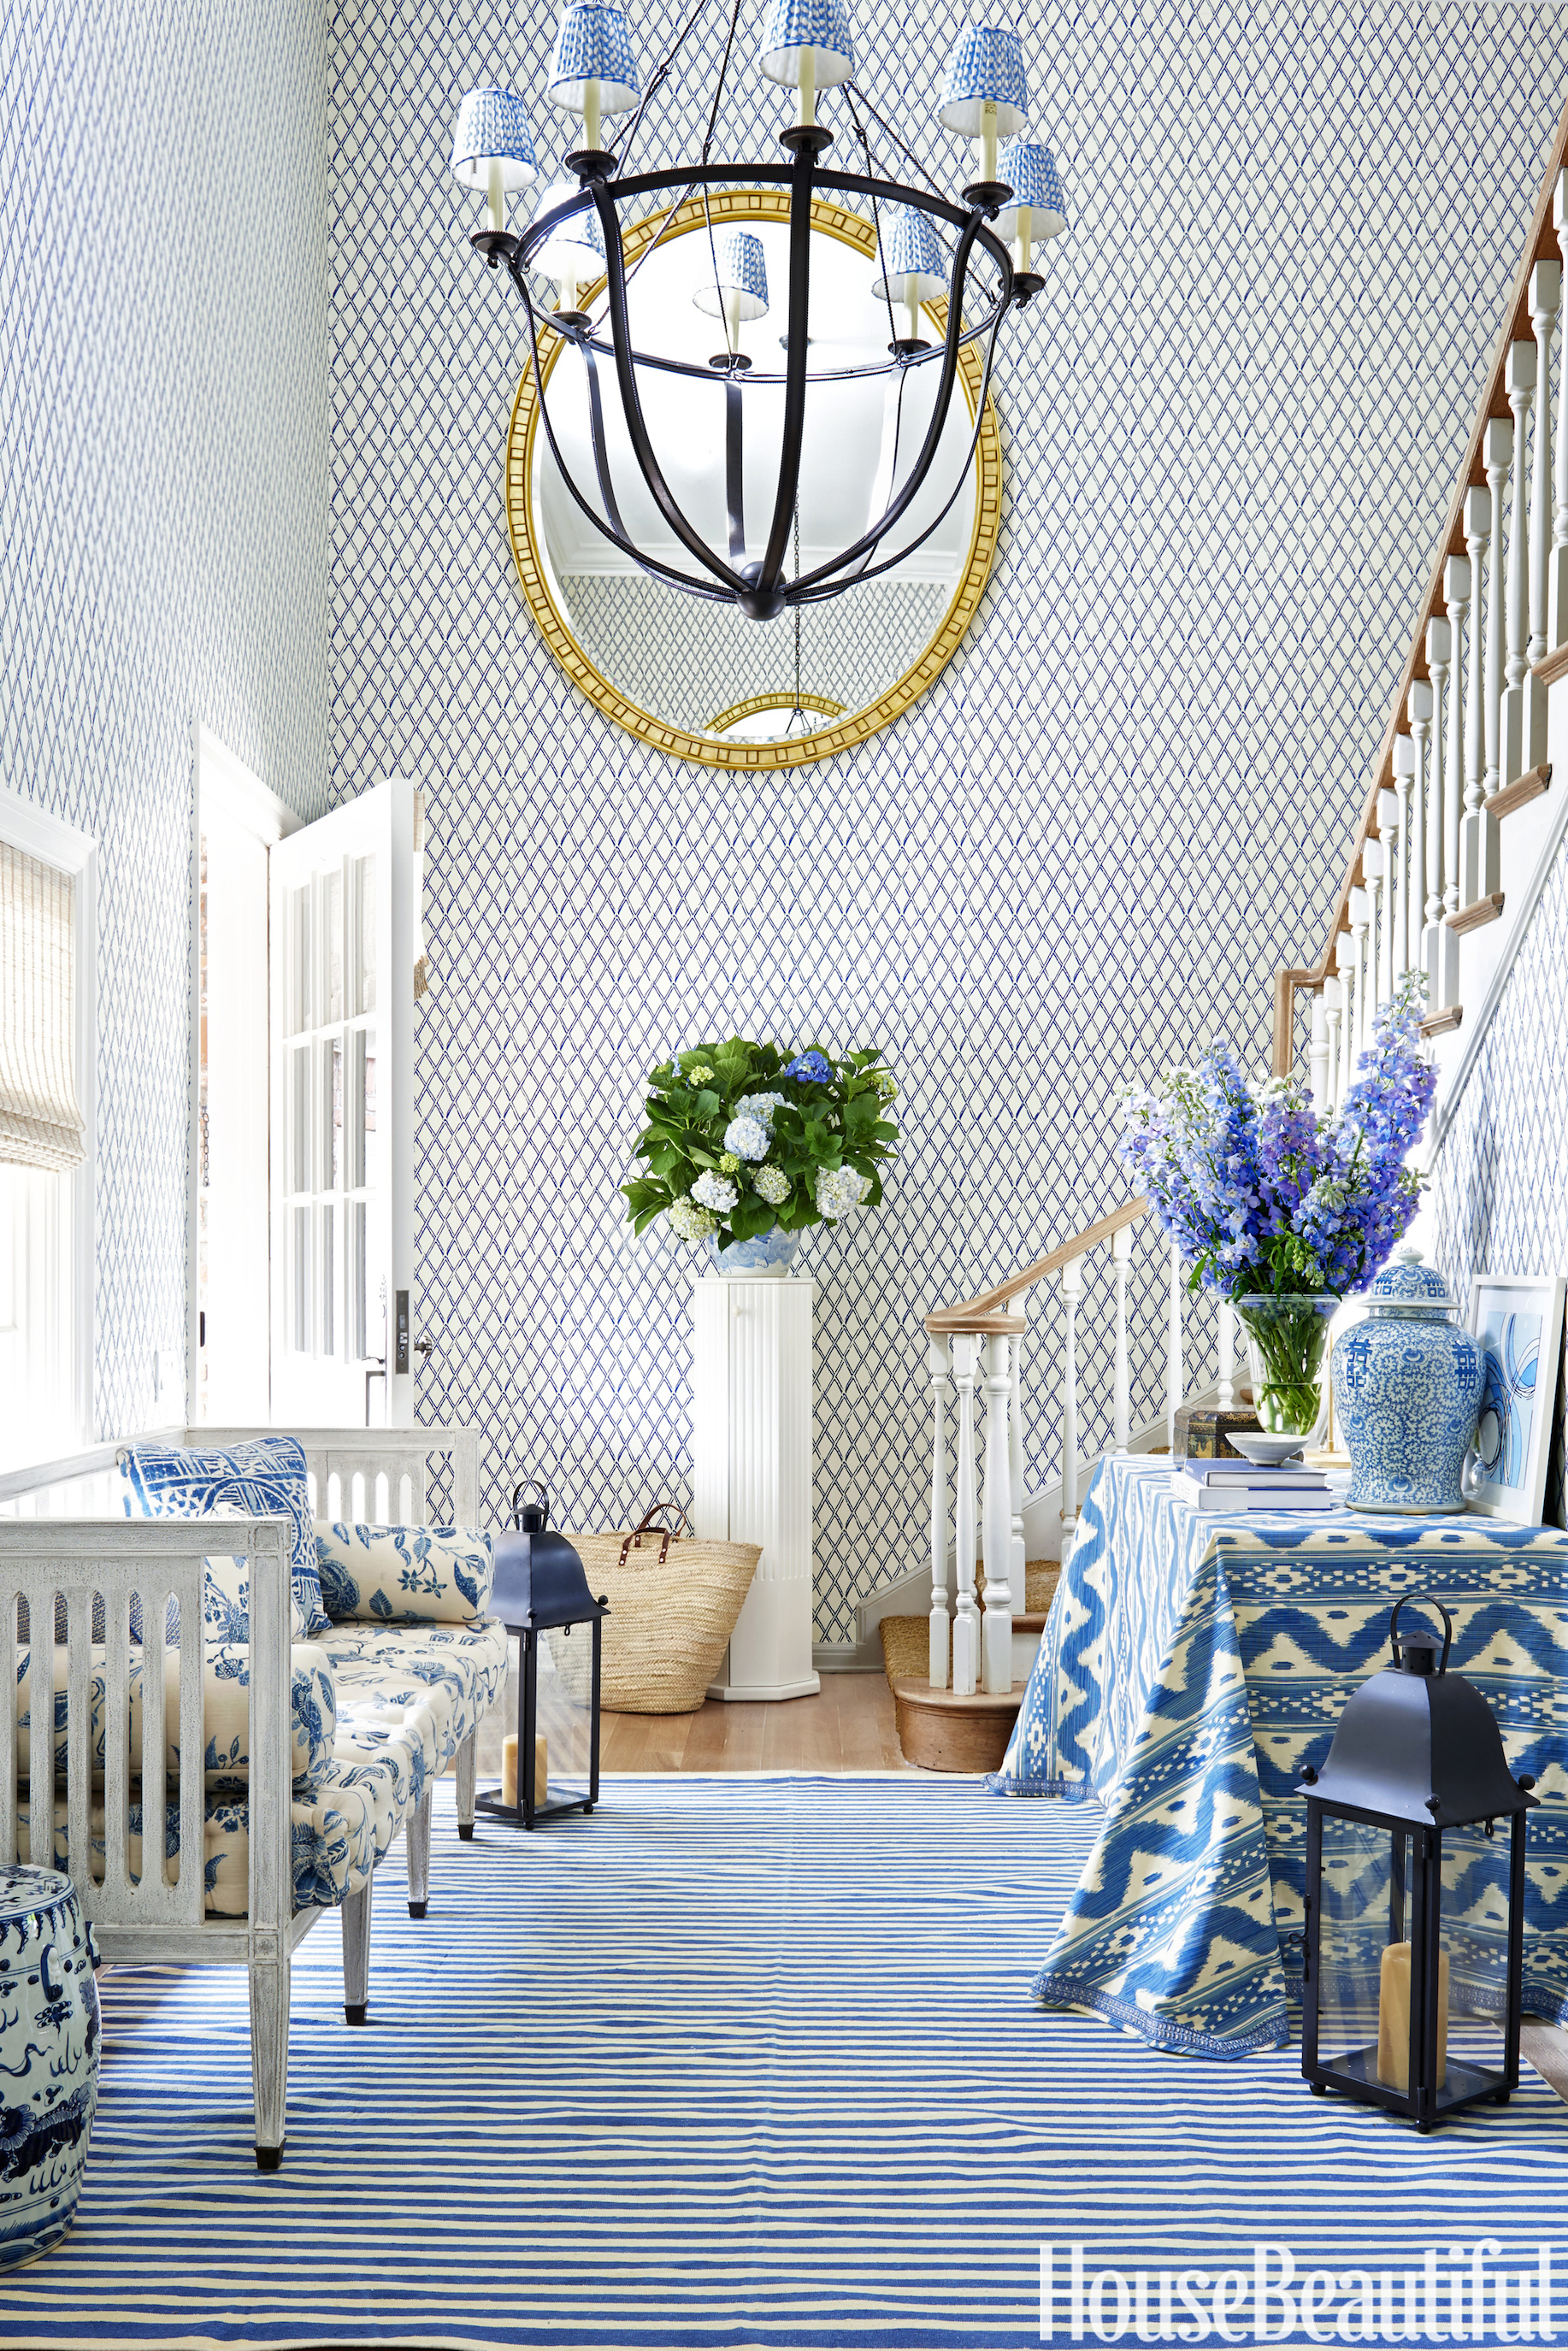 Fabulous Foyer Decorating Ideas: 70+ Foyer Decorating Ideas